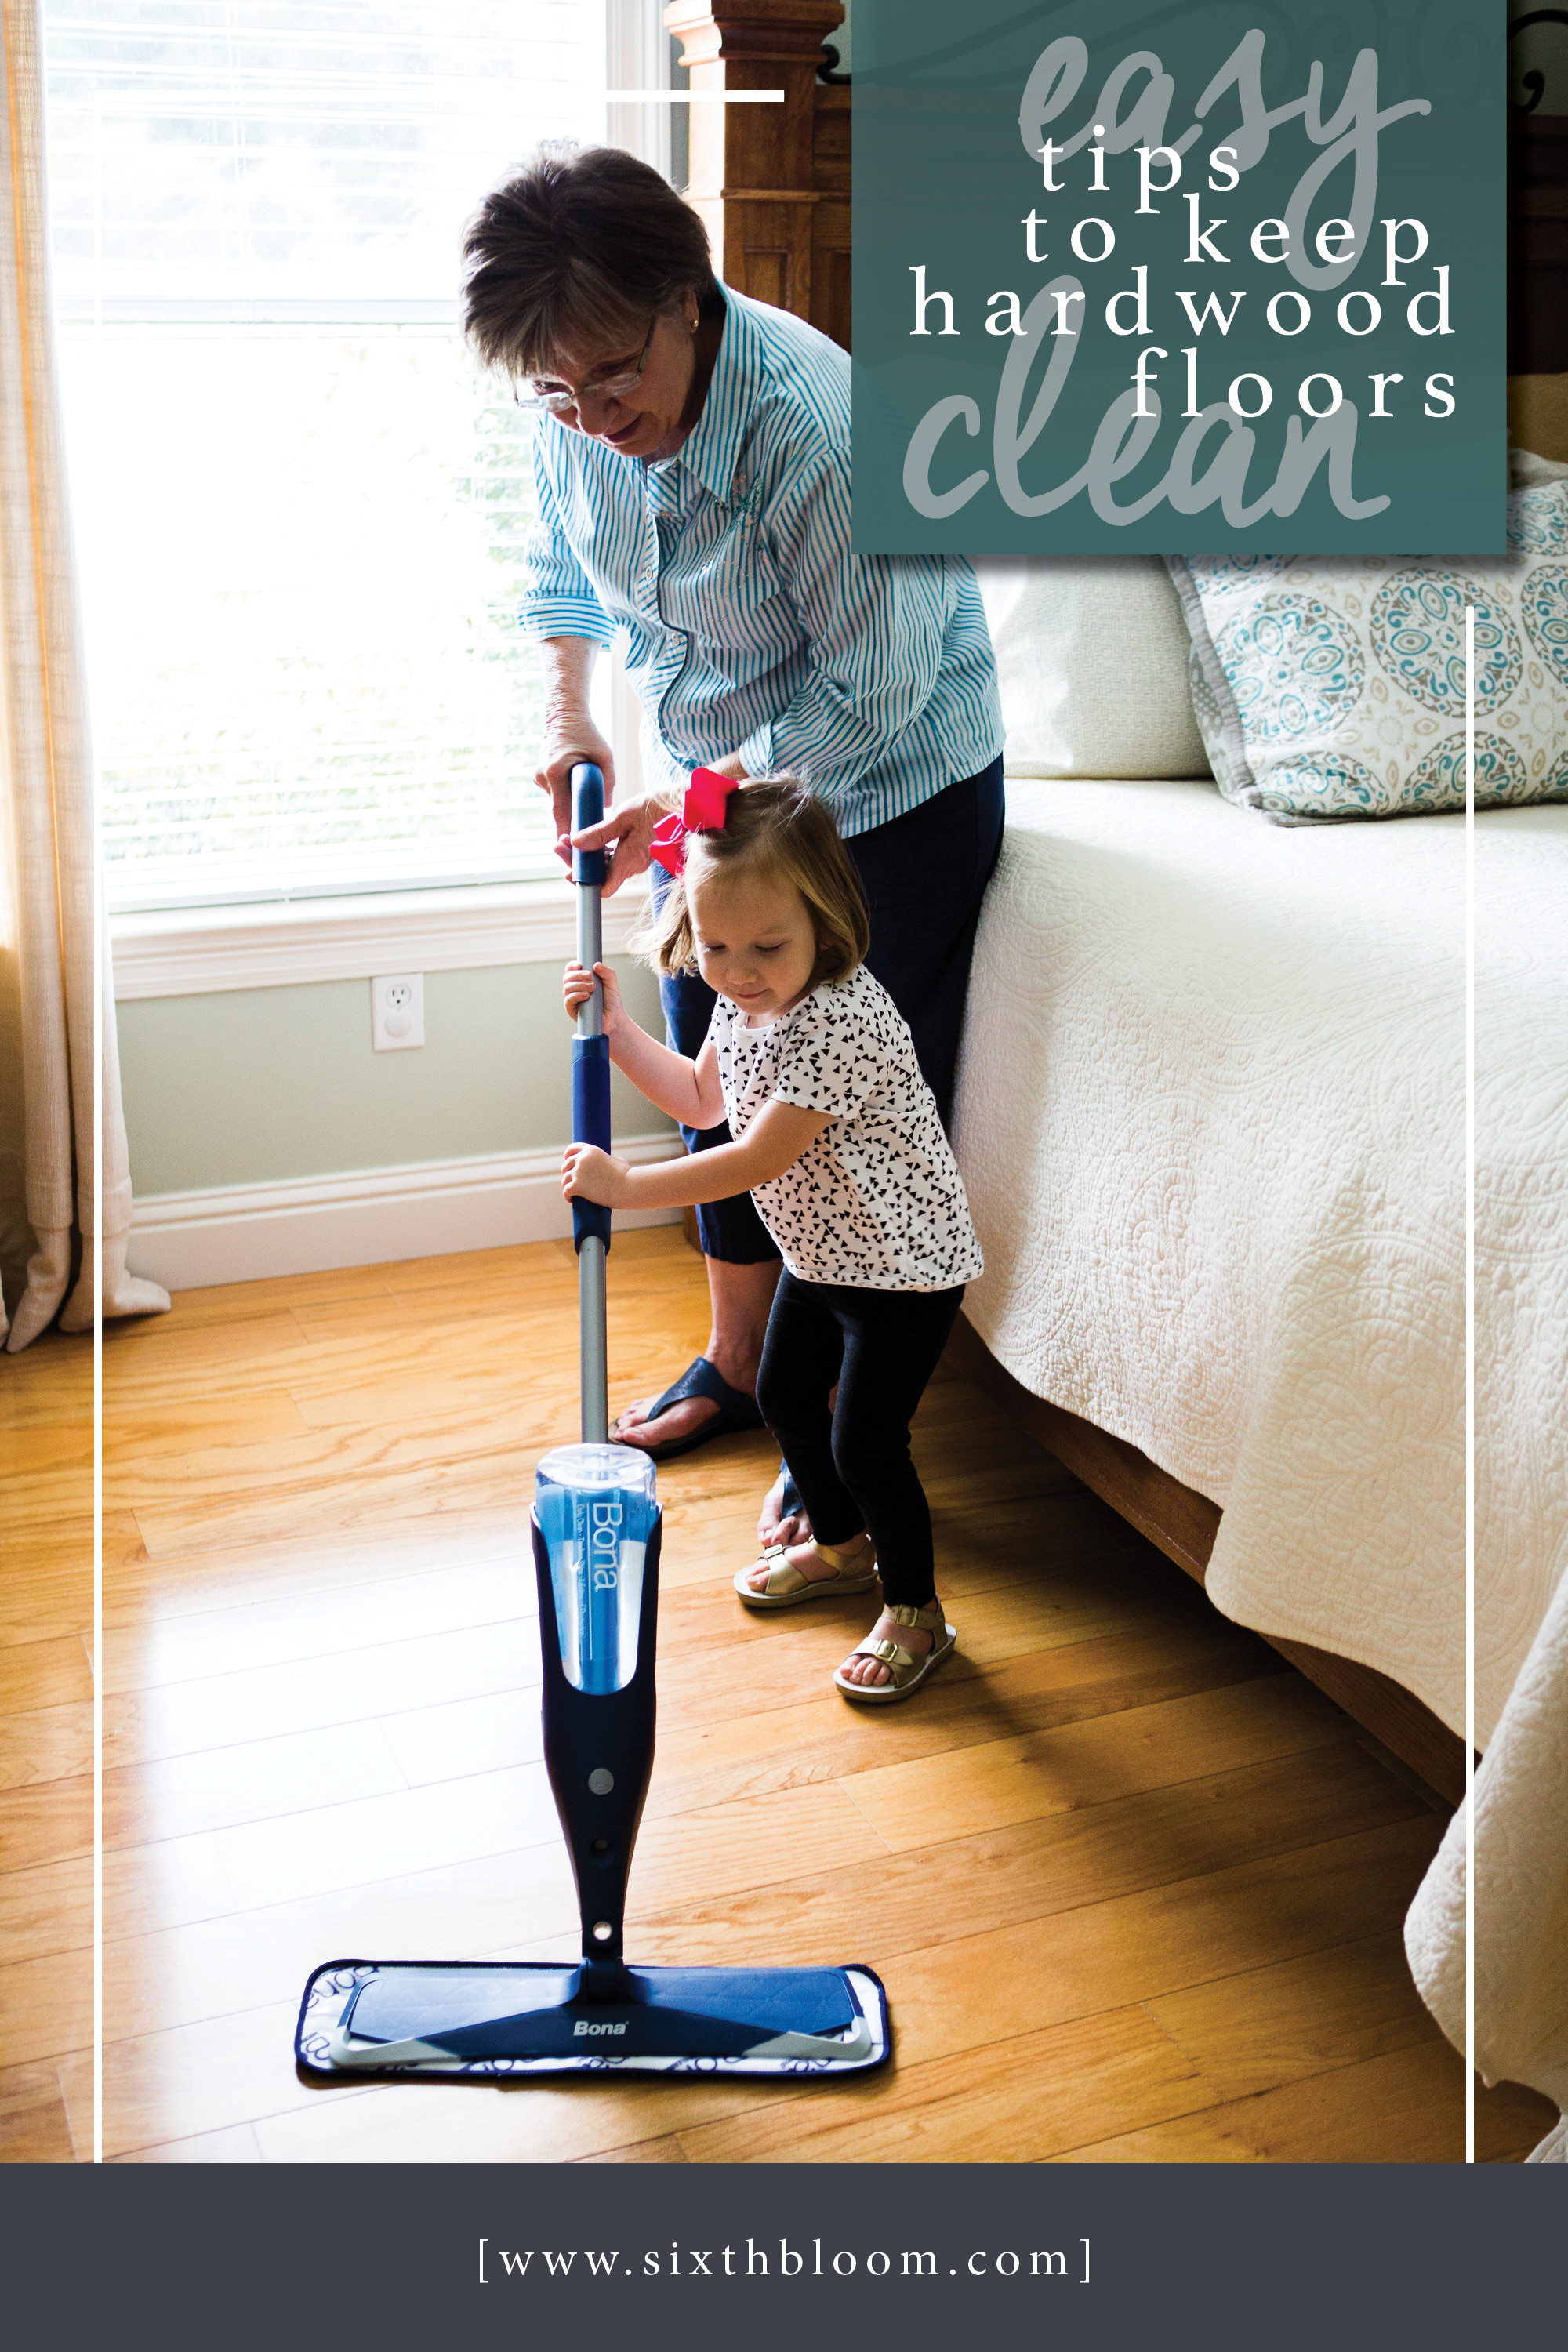 cleaning hardwood floors with vinegar of easy tips to keep hardwood floors clean sixth bloom lifestyle regarding easy tips to keep hardwood floors clean